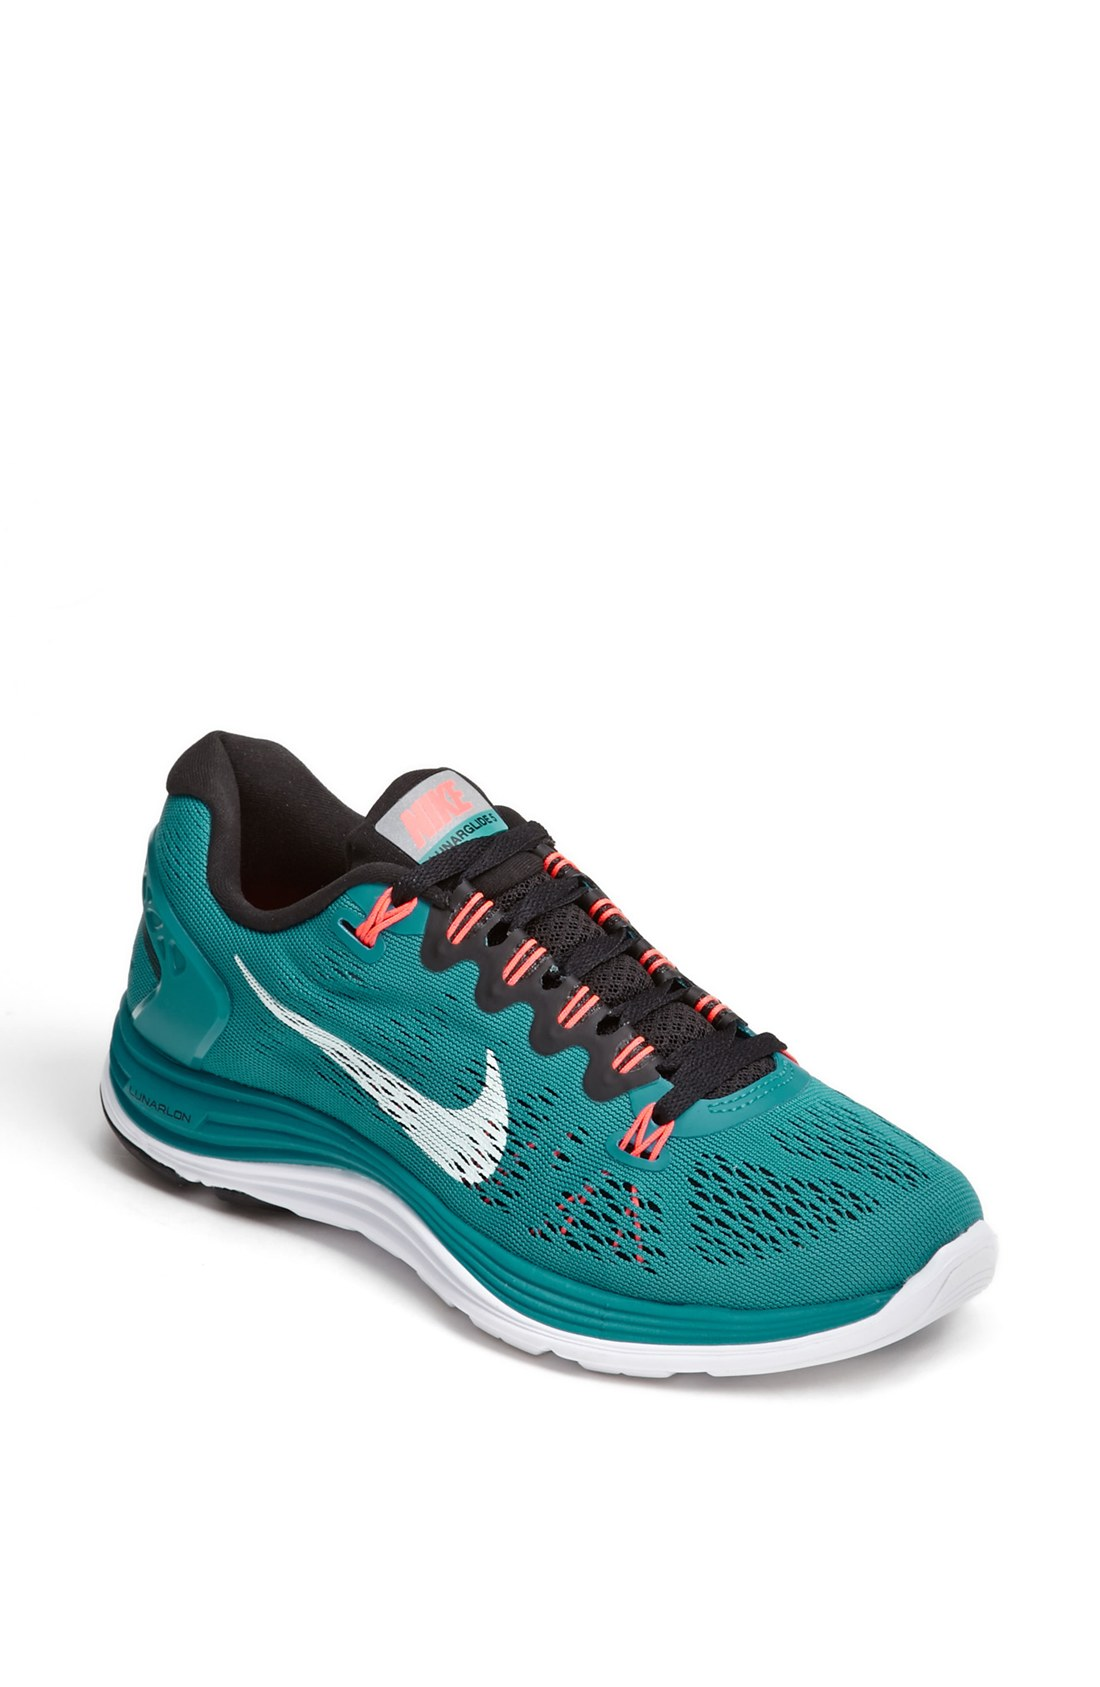 Awesome Cheapest Nike Air Max 2013 Teal Running Shoes For Women On Sale Now